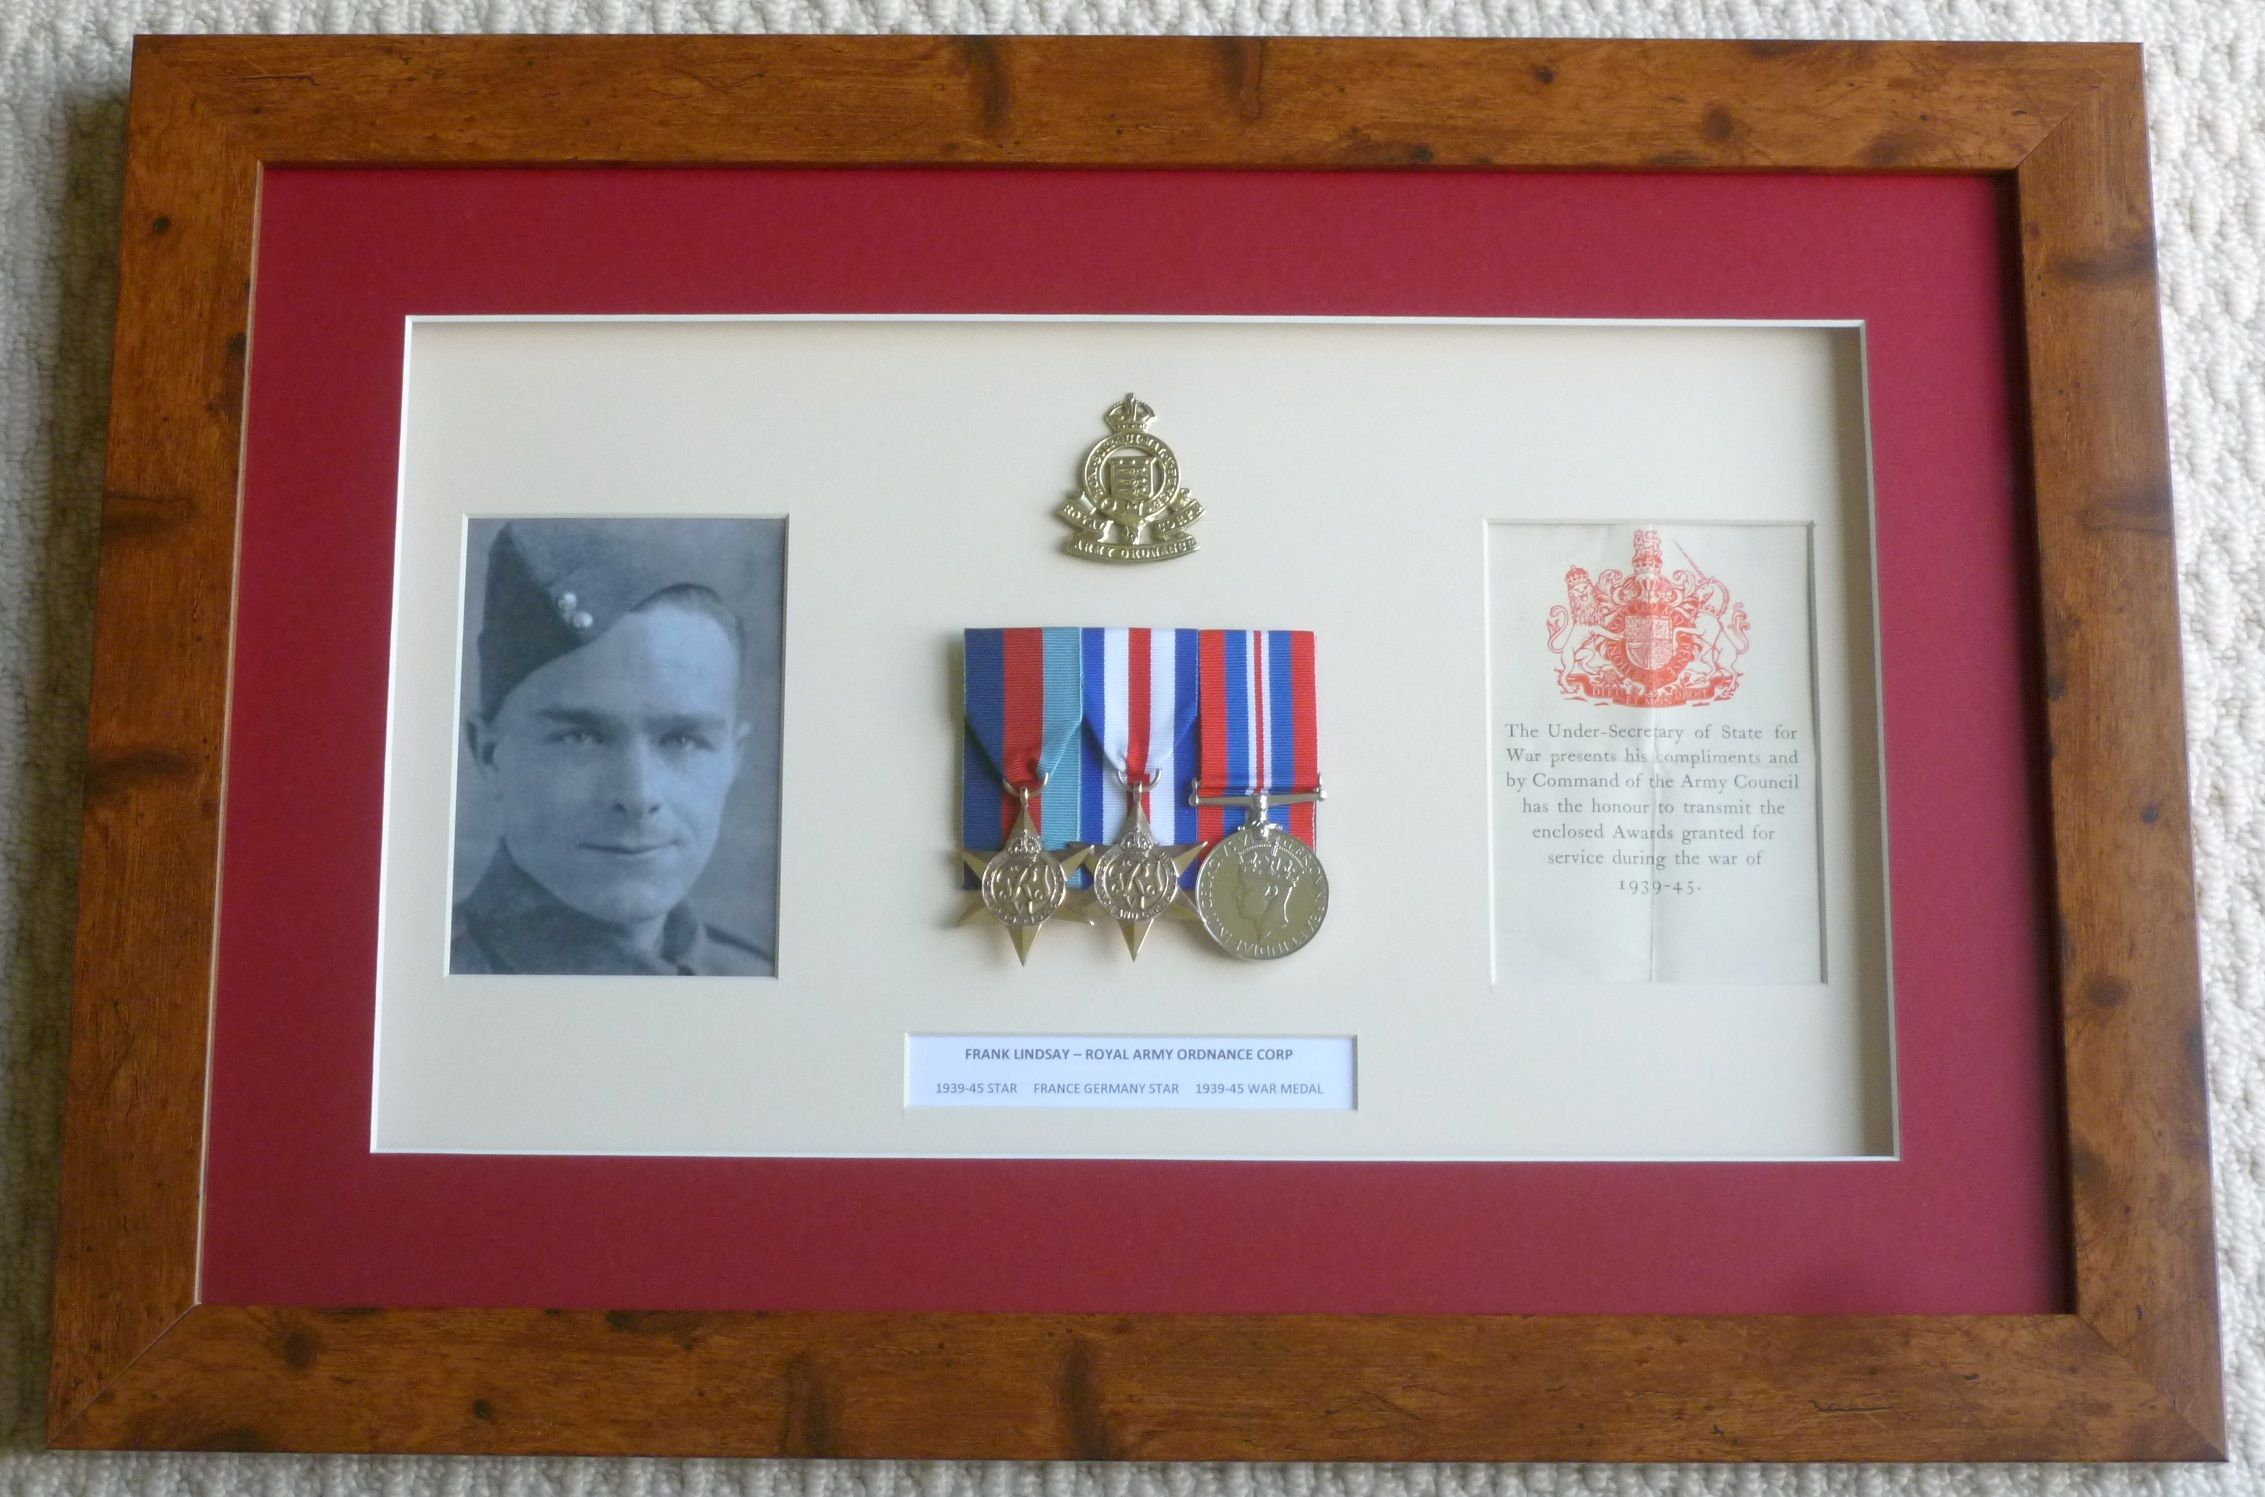 WW2 memorabilia picture frame containing containing 39/45 Star Medal ...